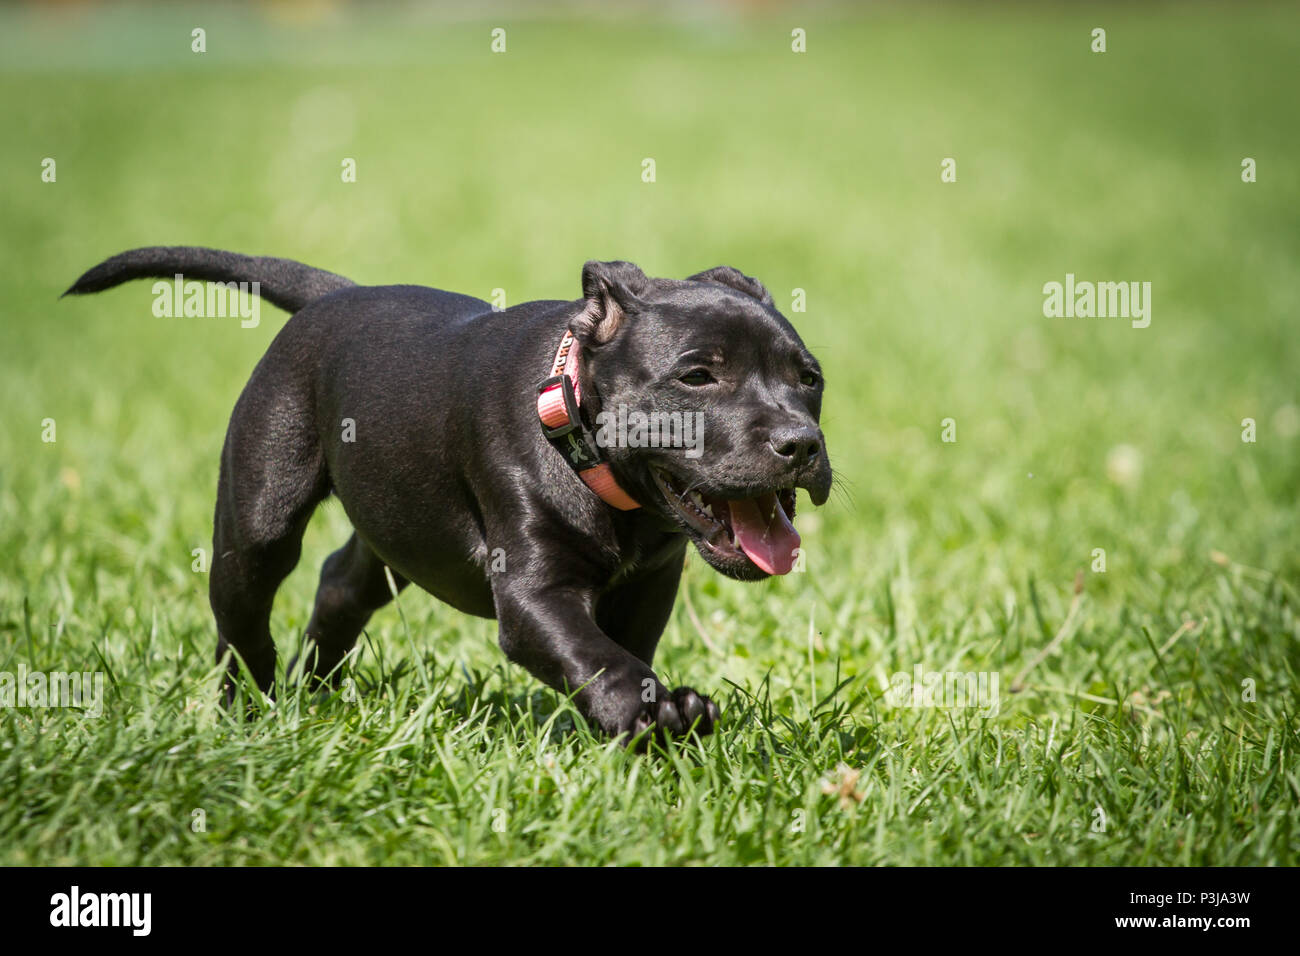 Black Staffordshire Bull Terrier puppy running on a meadow - Stock Image